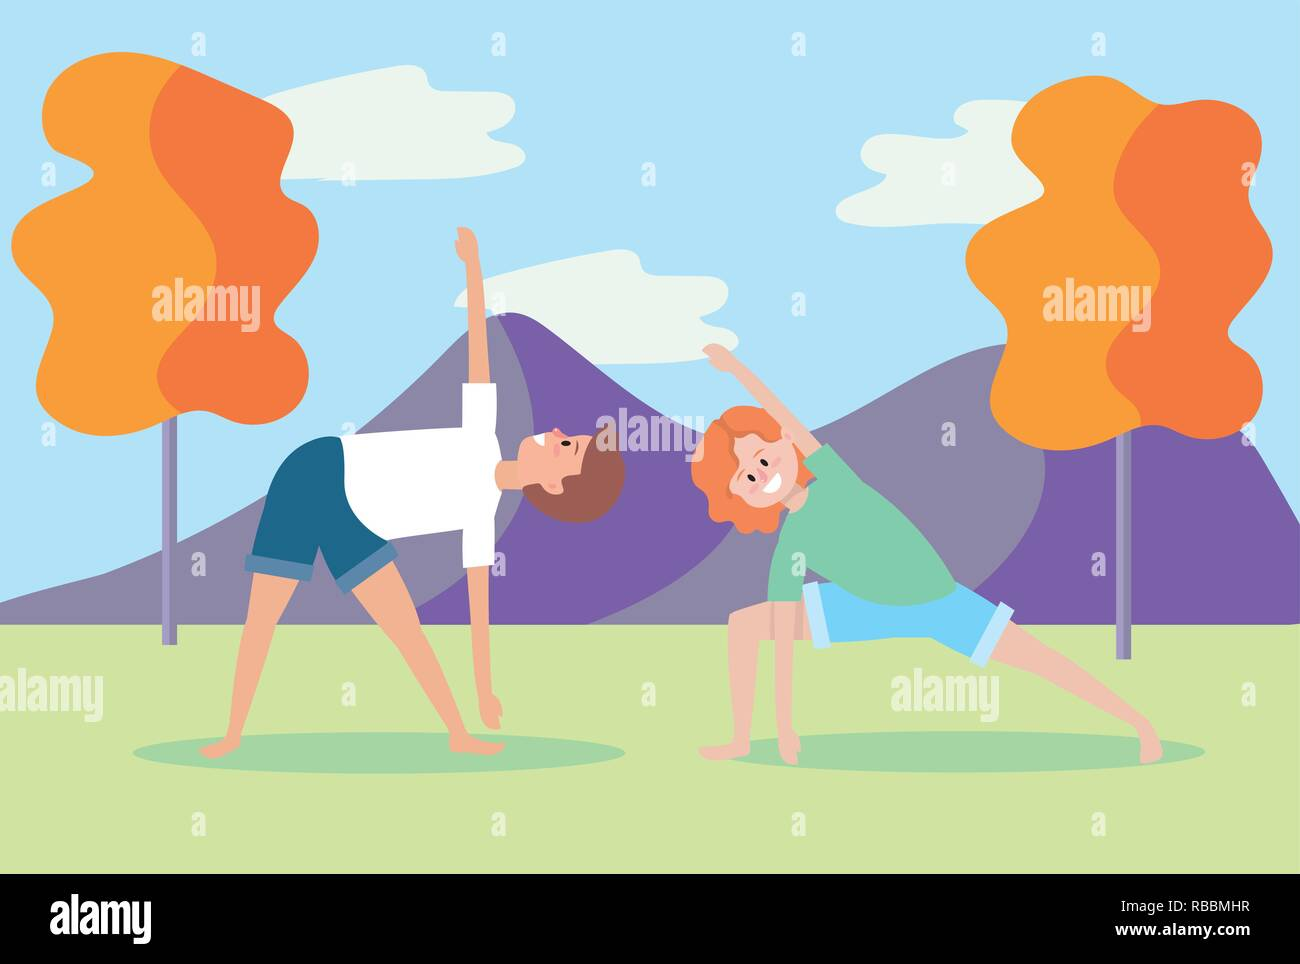 man and woman practice yoga pose - Stock Vector